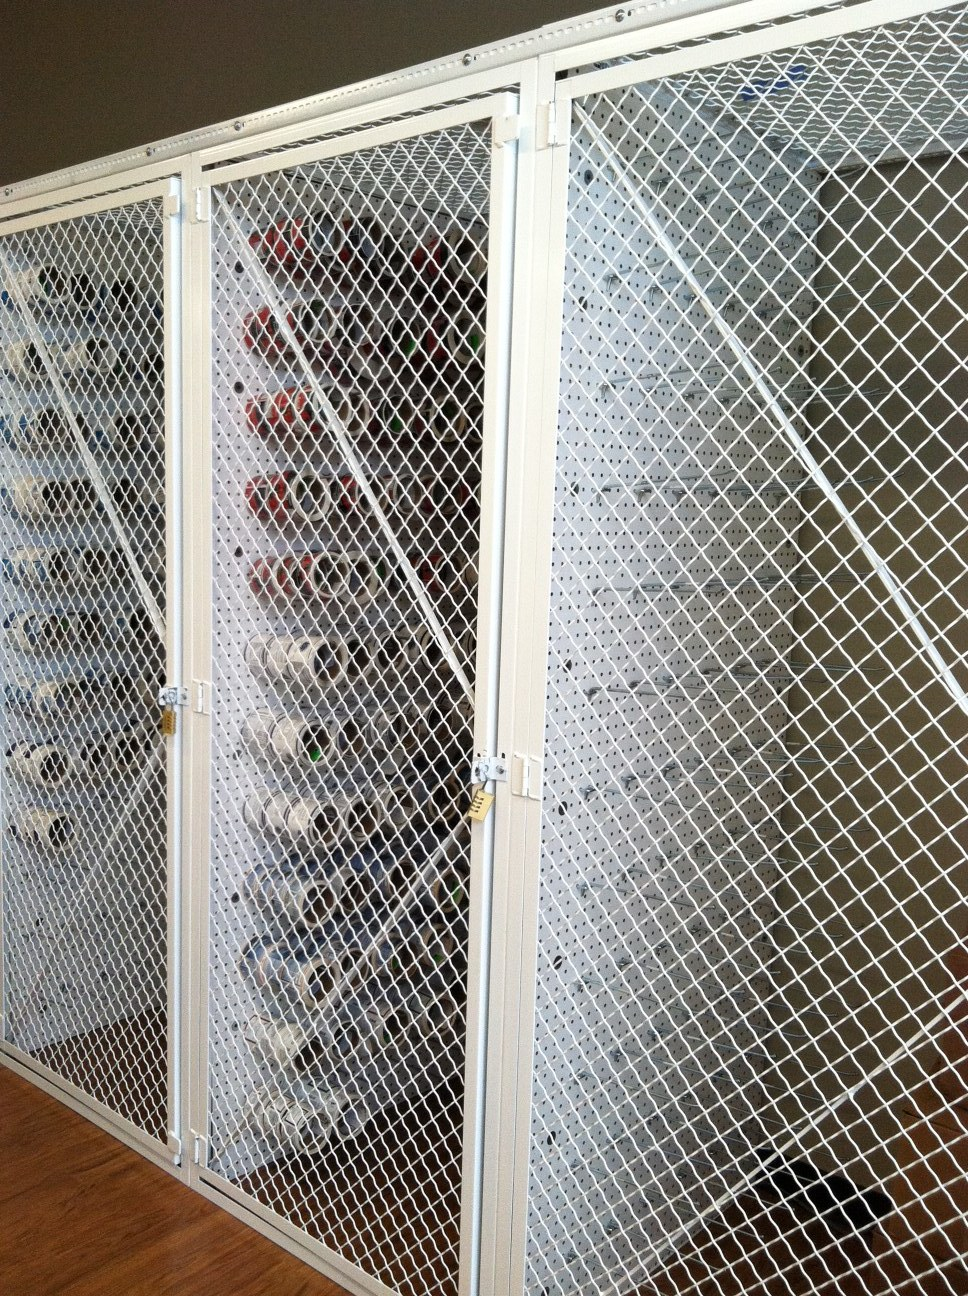 Wire Security Cages, Woven Wire Cage Storage Lockers